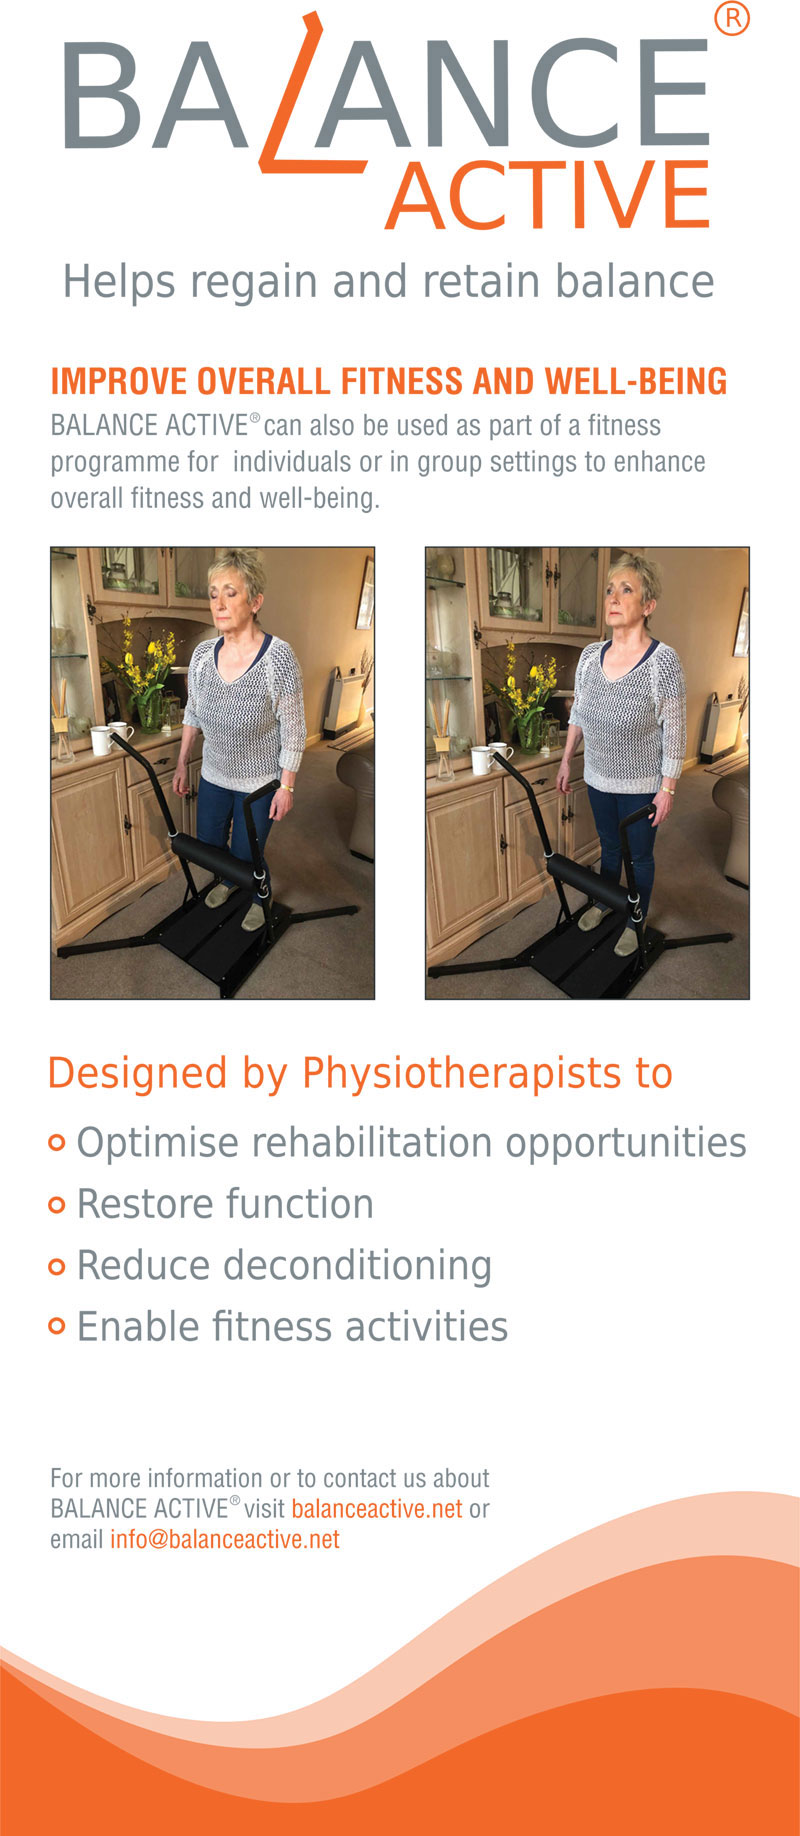 Balance Active physiotherapy and rehabilitation equipment poster 2